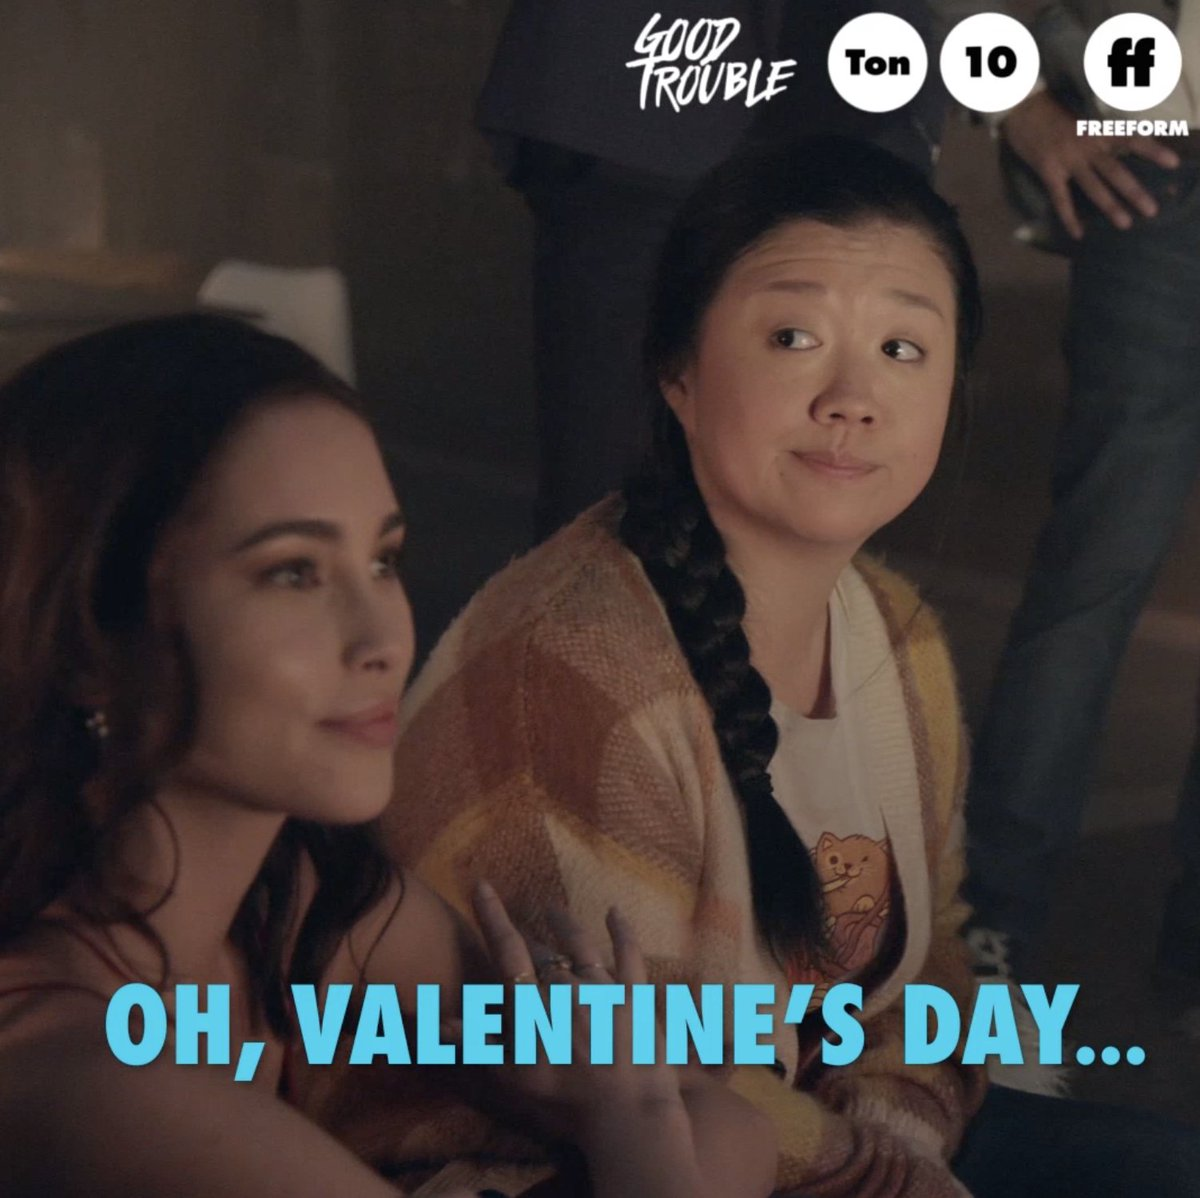 Never have I ever ... oh wait, we've done everything.  __________________________ Good Trouble is all new tonight with a special Valentine's Day episode. Don't miss it at 10p/9c on @FreeformTV.